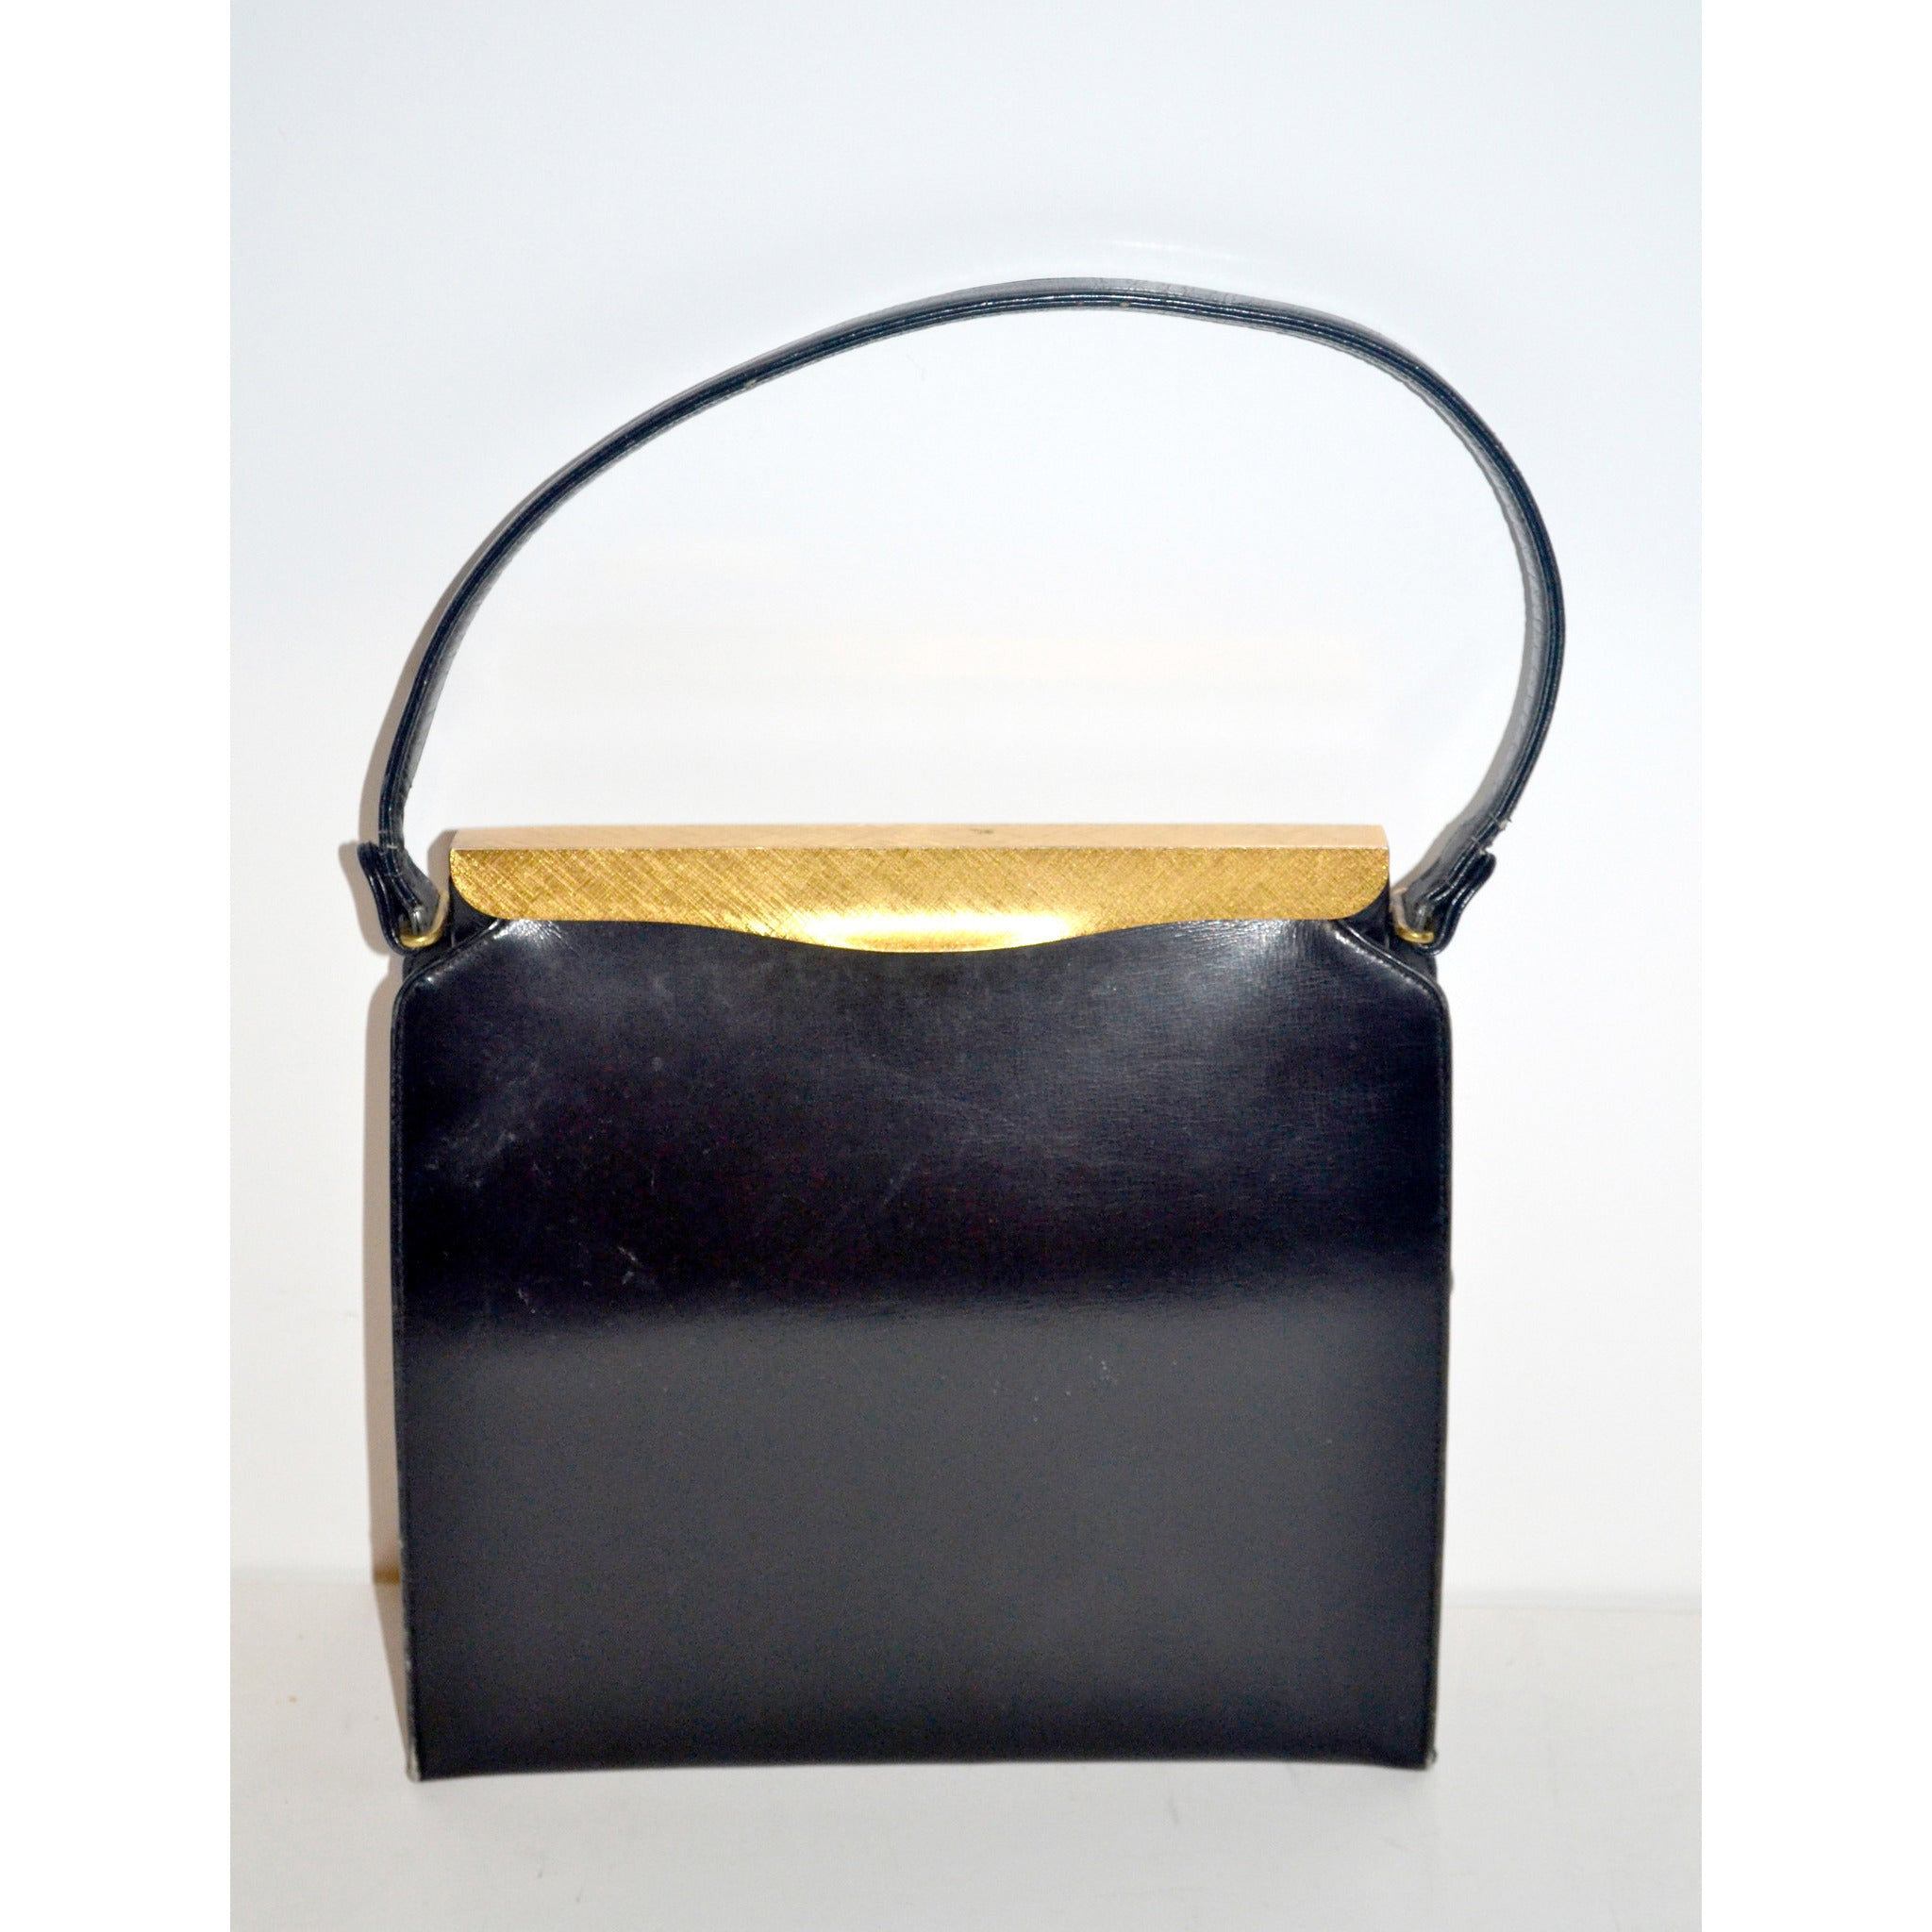 Vintage Black Leather Handbag By Coblentz